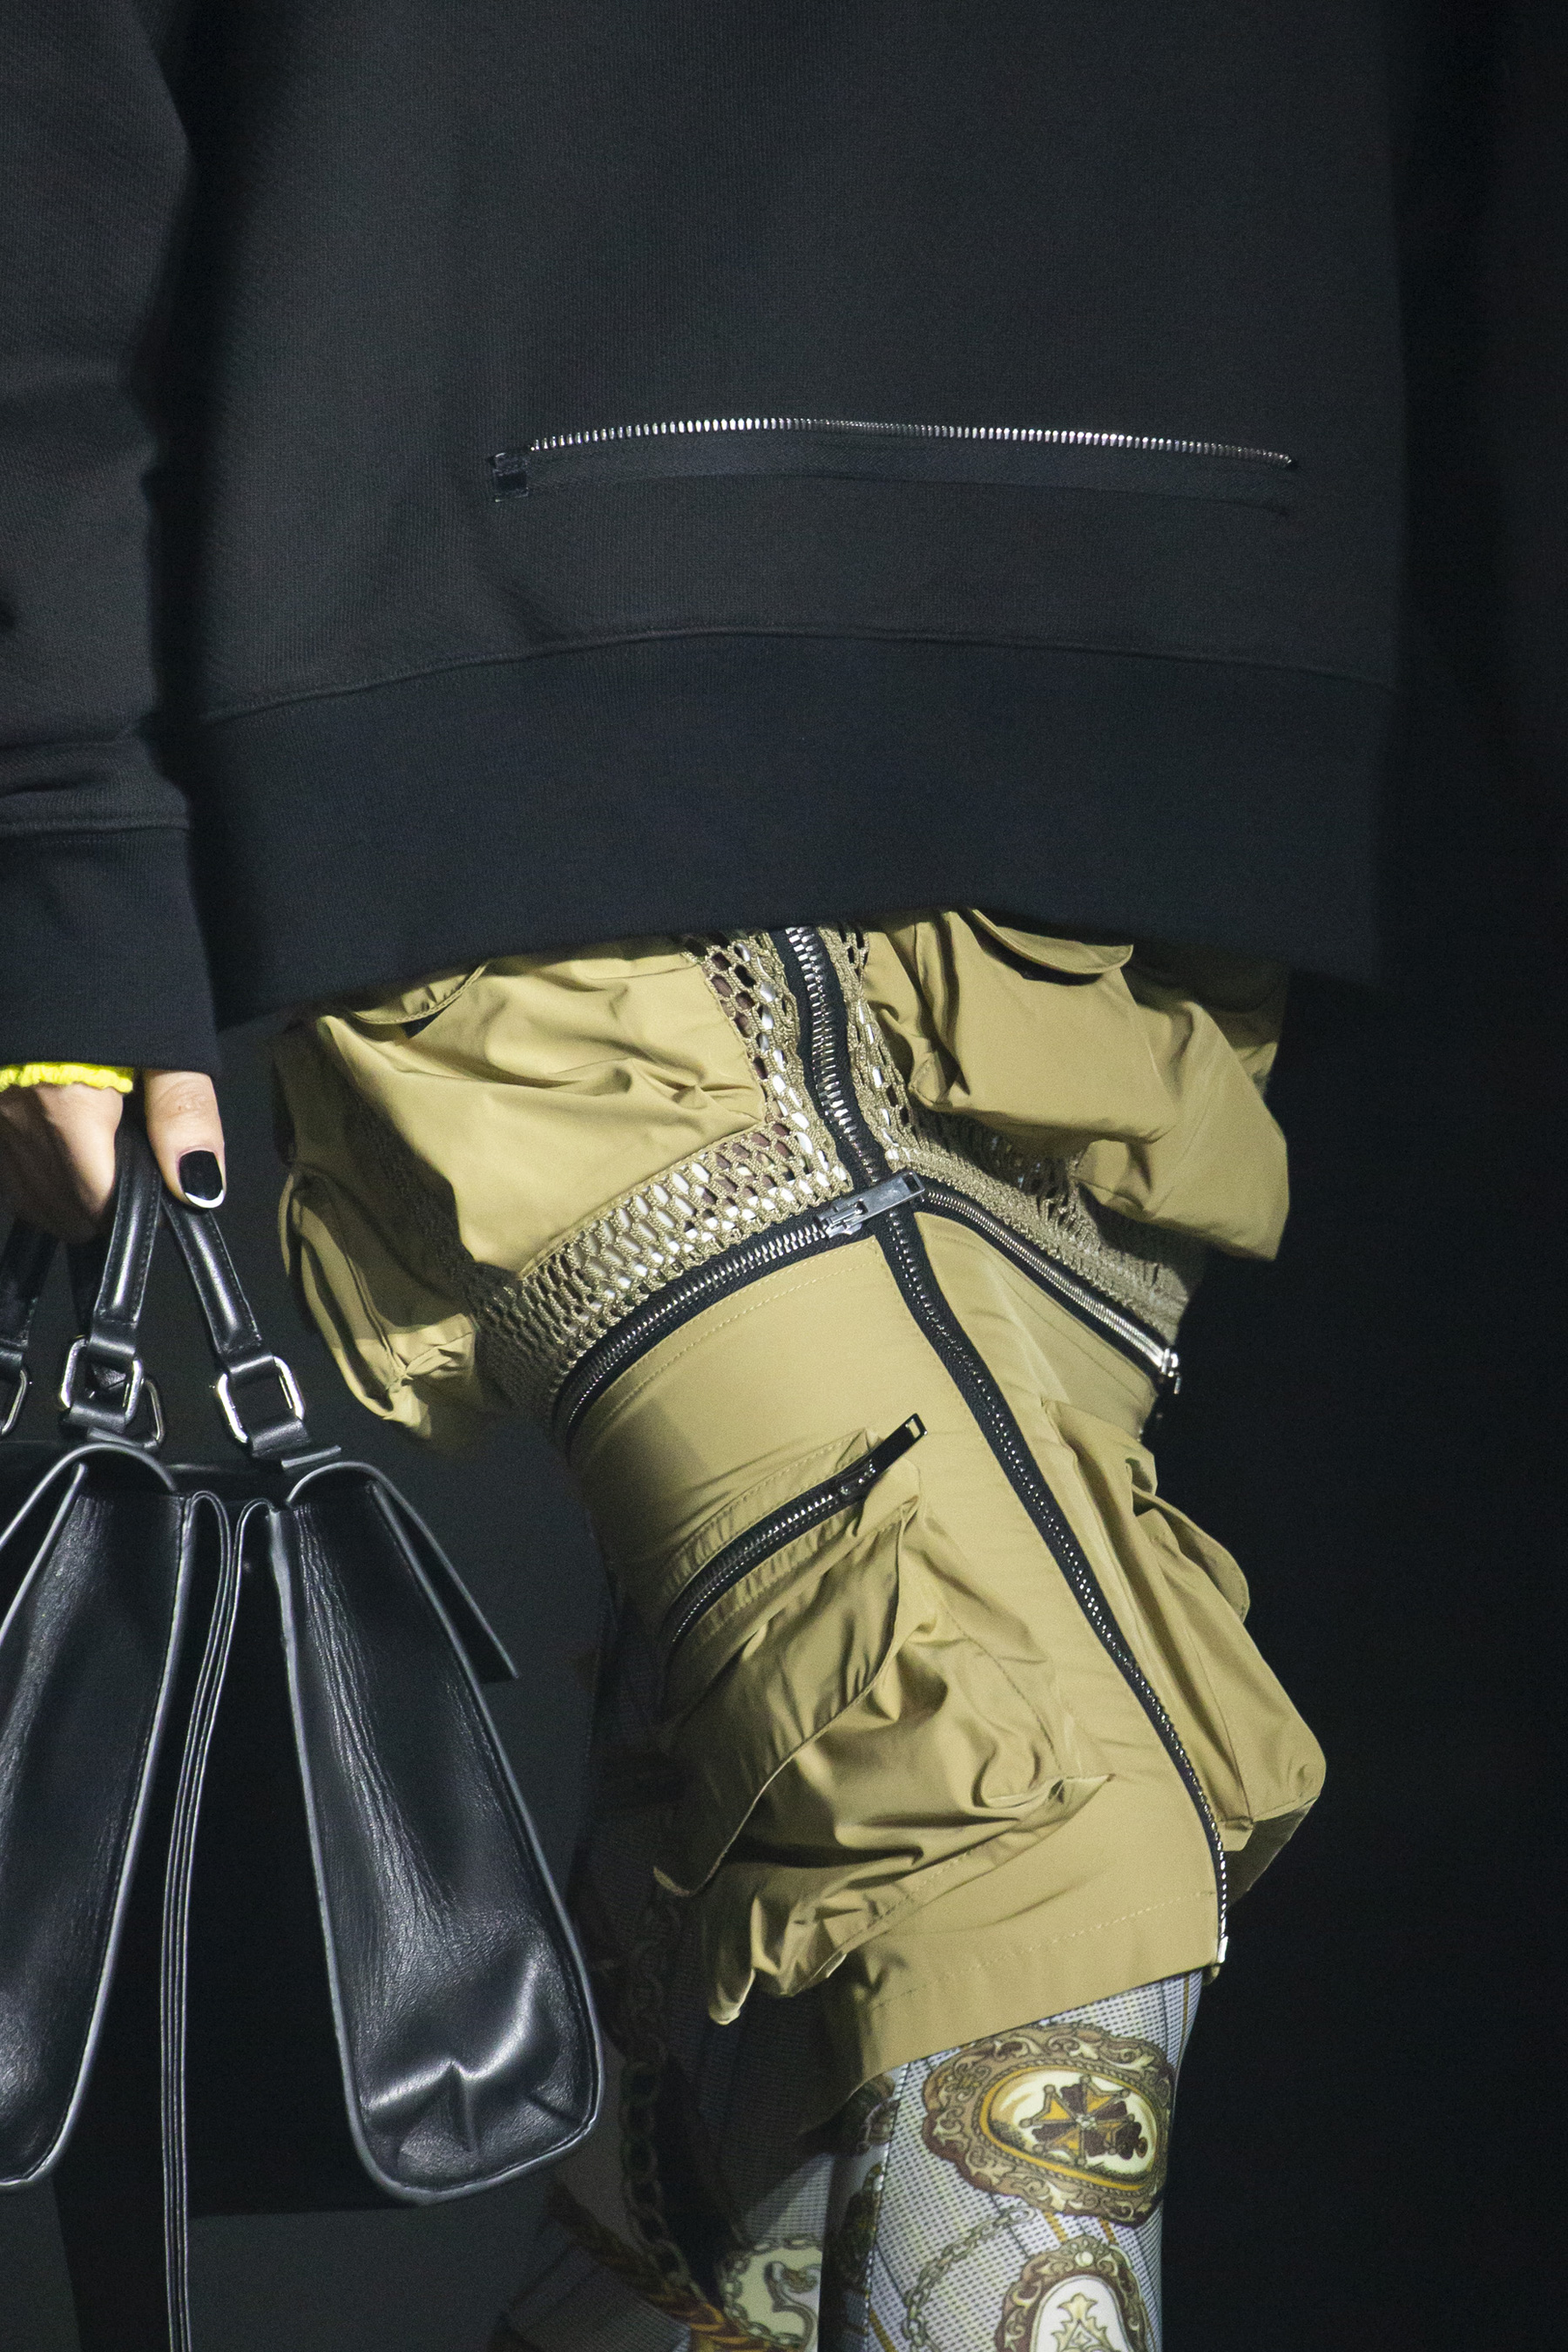 Palm Angels Fall 2019 Fashion Show Details